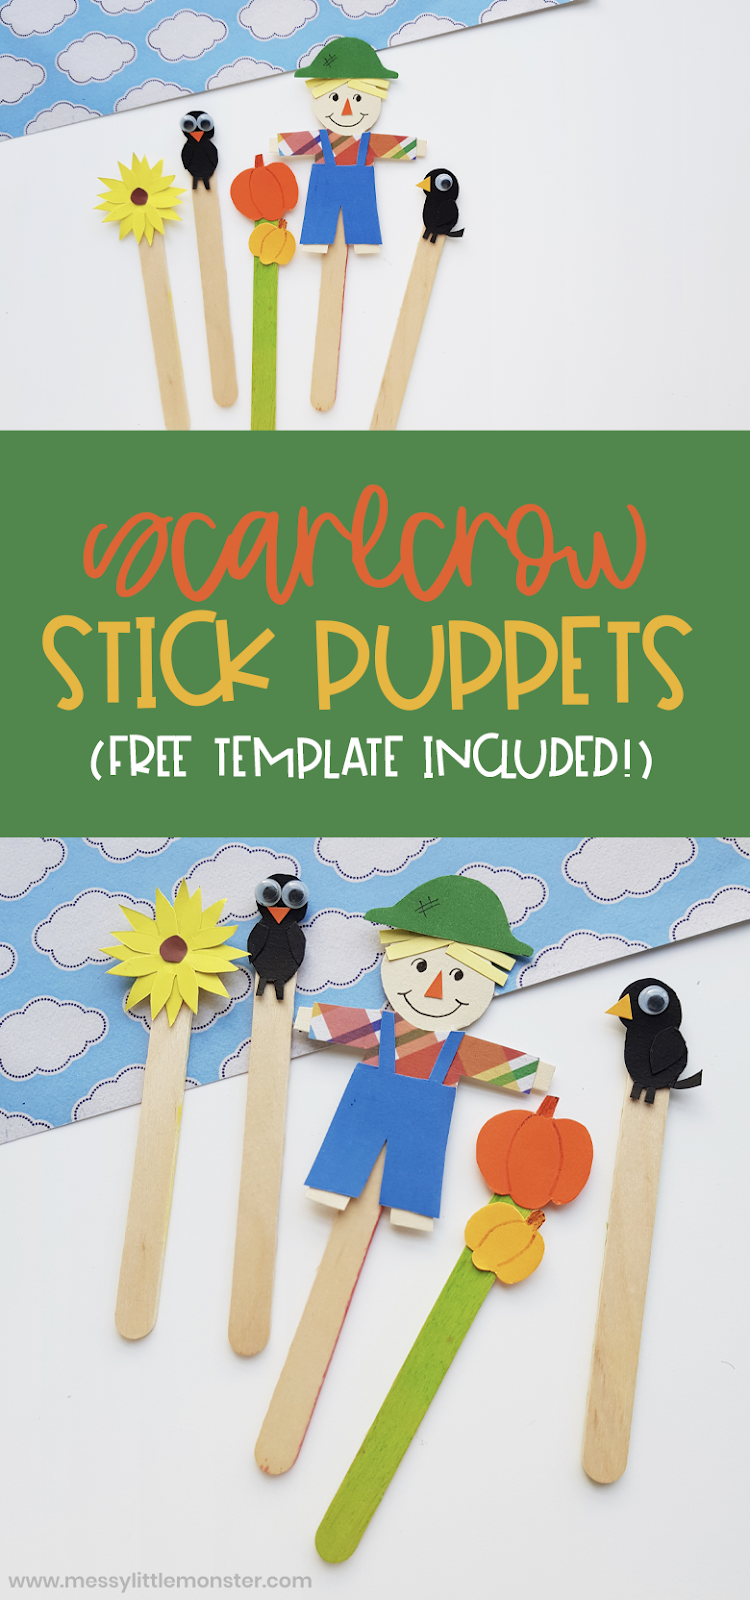 Scarecrow craft. Popsicle stick puppets with scarecrow template. Easy fall craft for kids.